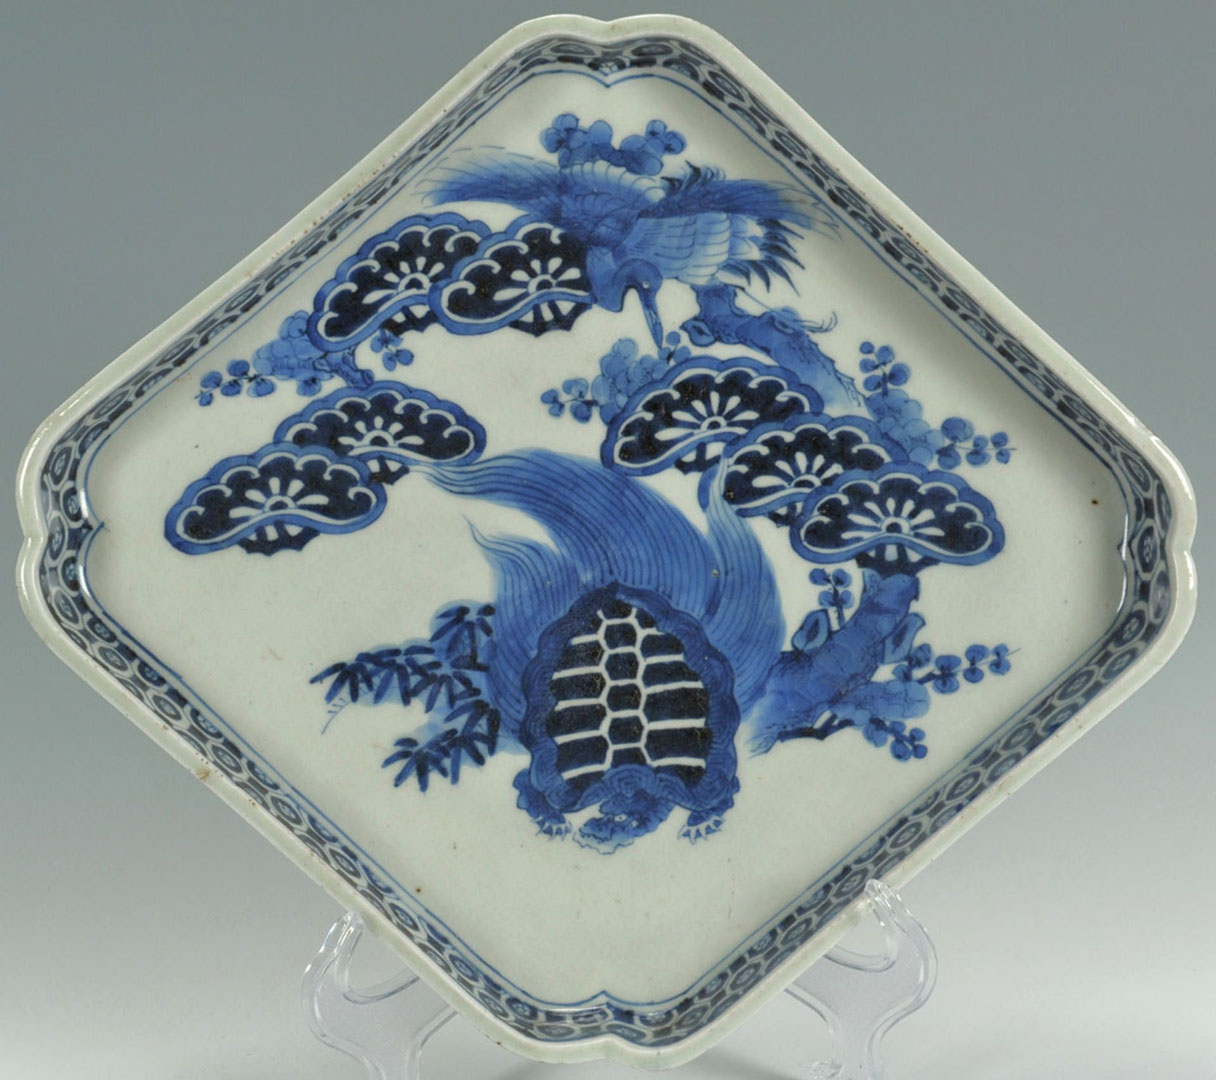 Lot 2872286: Chinese Covered Jar and Diamond shaped tray